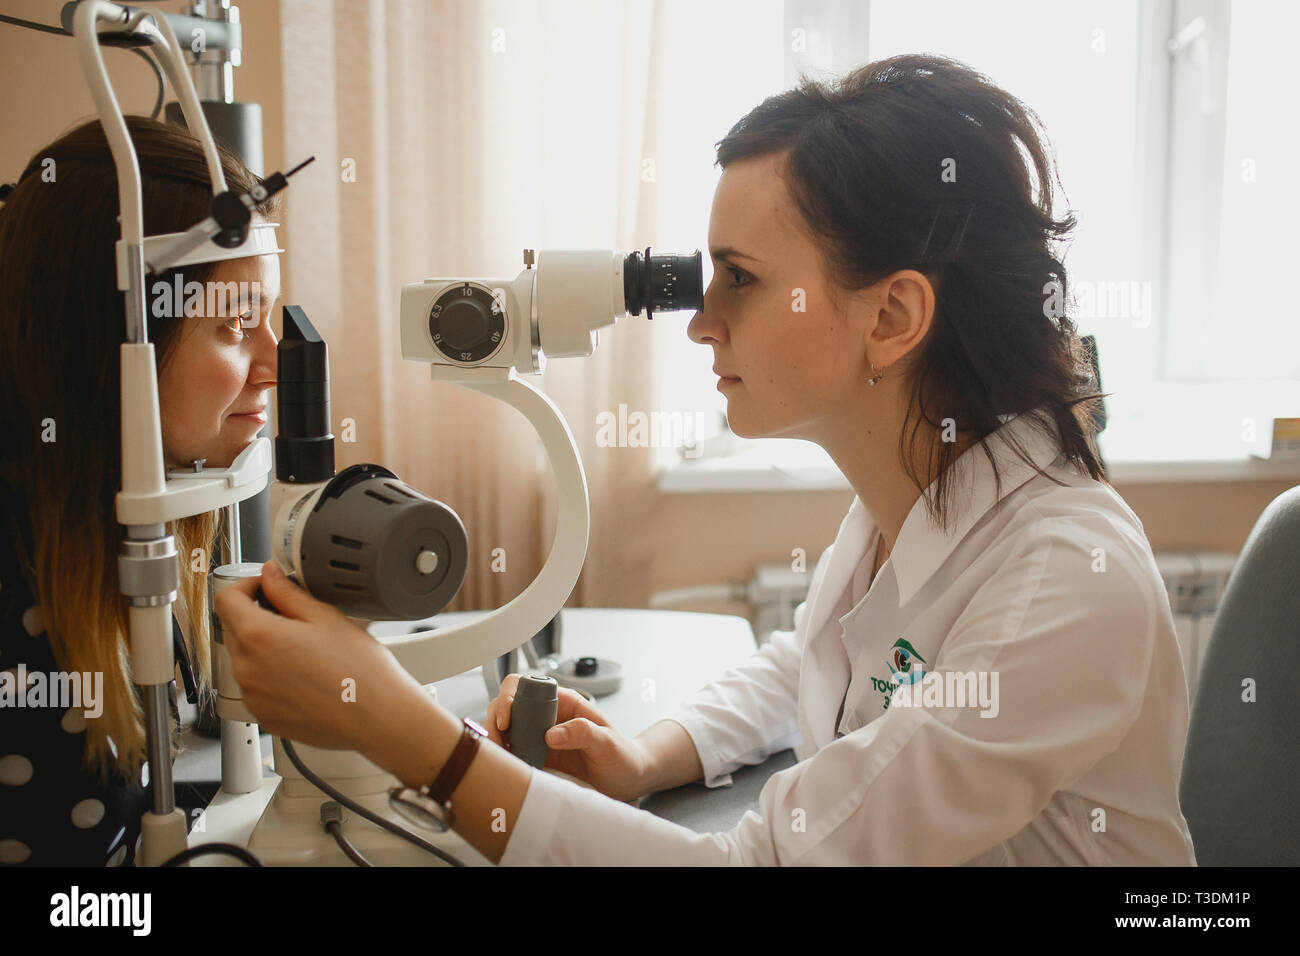 Arkhangelsk, Russia - March 25, 2019: Attractive female doctor ophthalmologist is checking the eye vision of young woman in modern clinic. Doctor and patient in ophthalmology clinic. - Stock Image